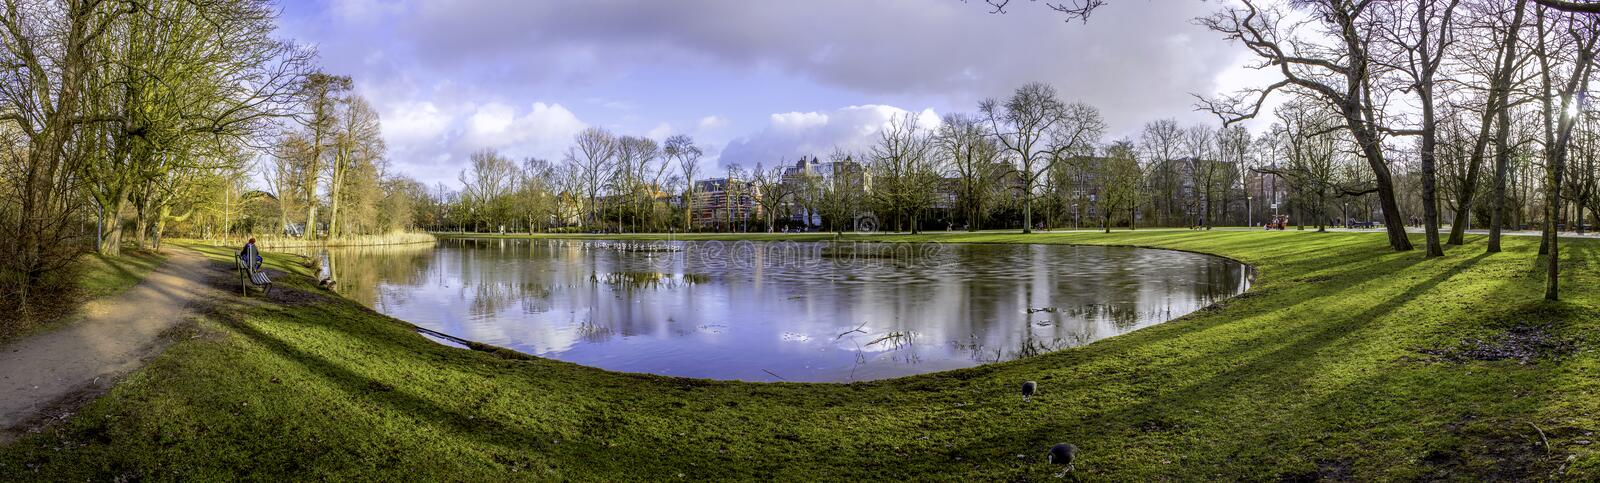 Pond panoramic landscape photo in Vondelpark, Amsterdam. Is a pu. Blic urban park of 47 hectares (120 acres), opened in 1865 and originally named the Nieuwe Park royalty free stock photo